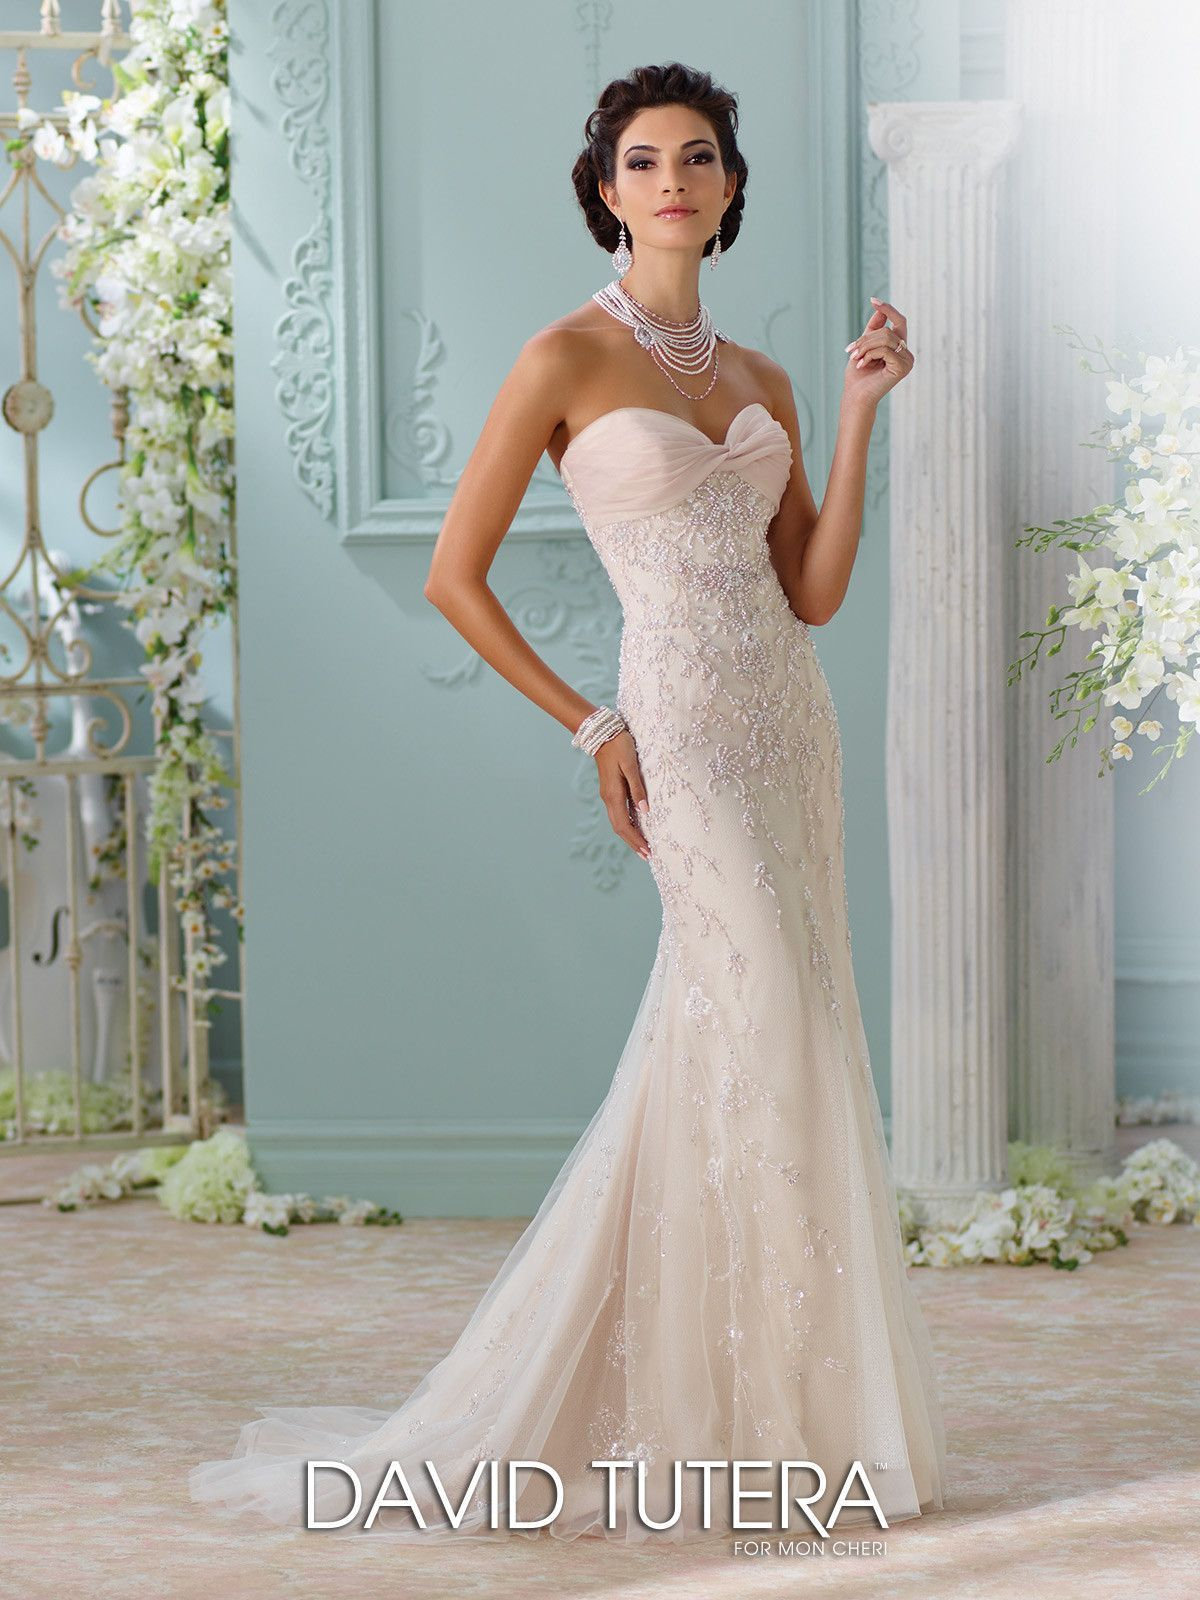 David tutera couture edan all dressed up bridal gown